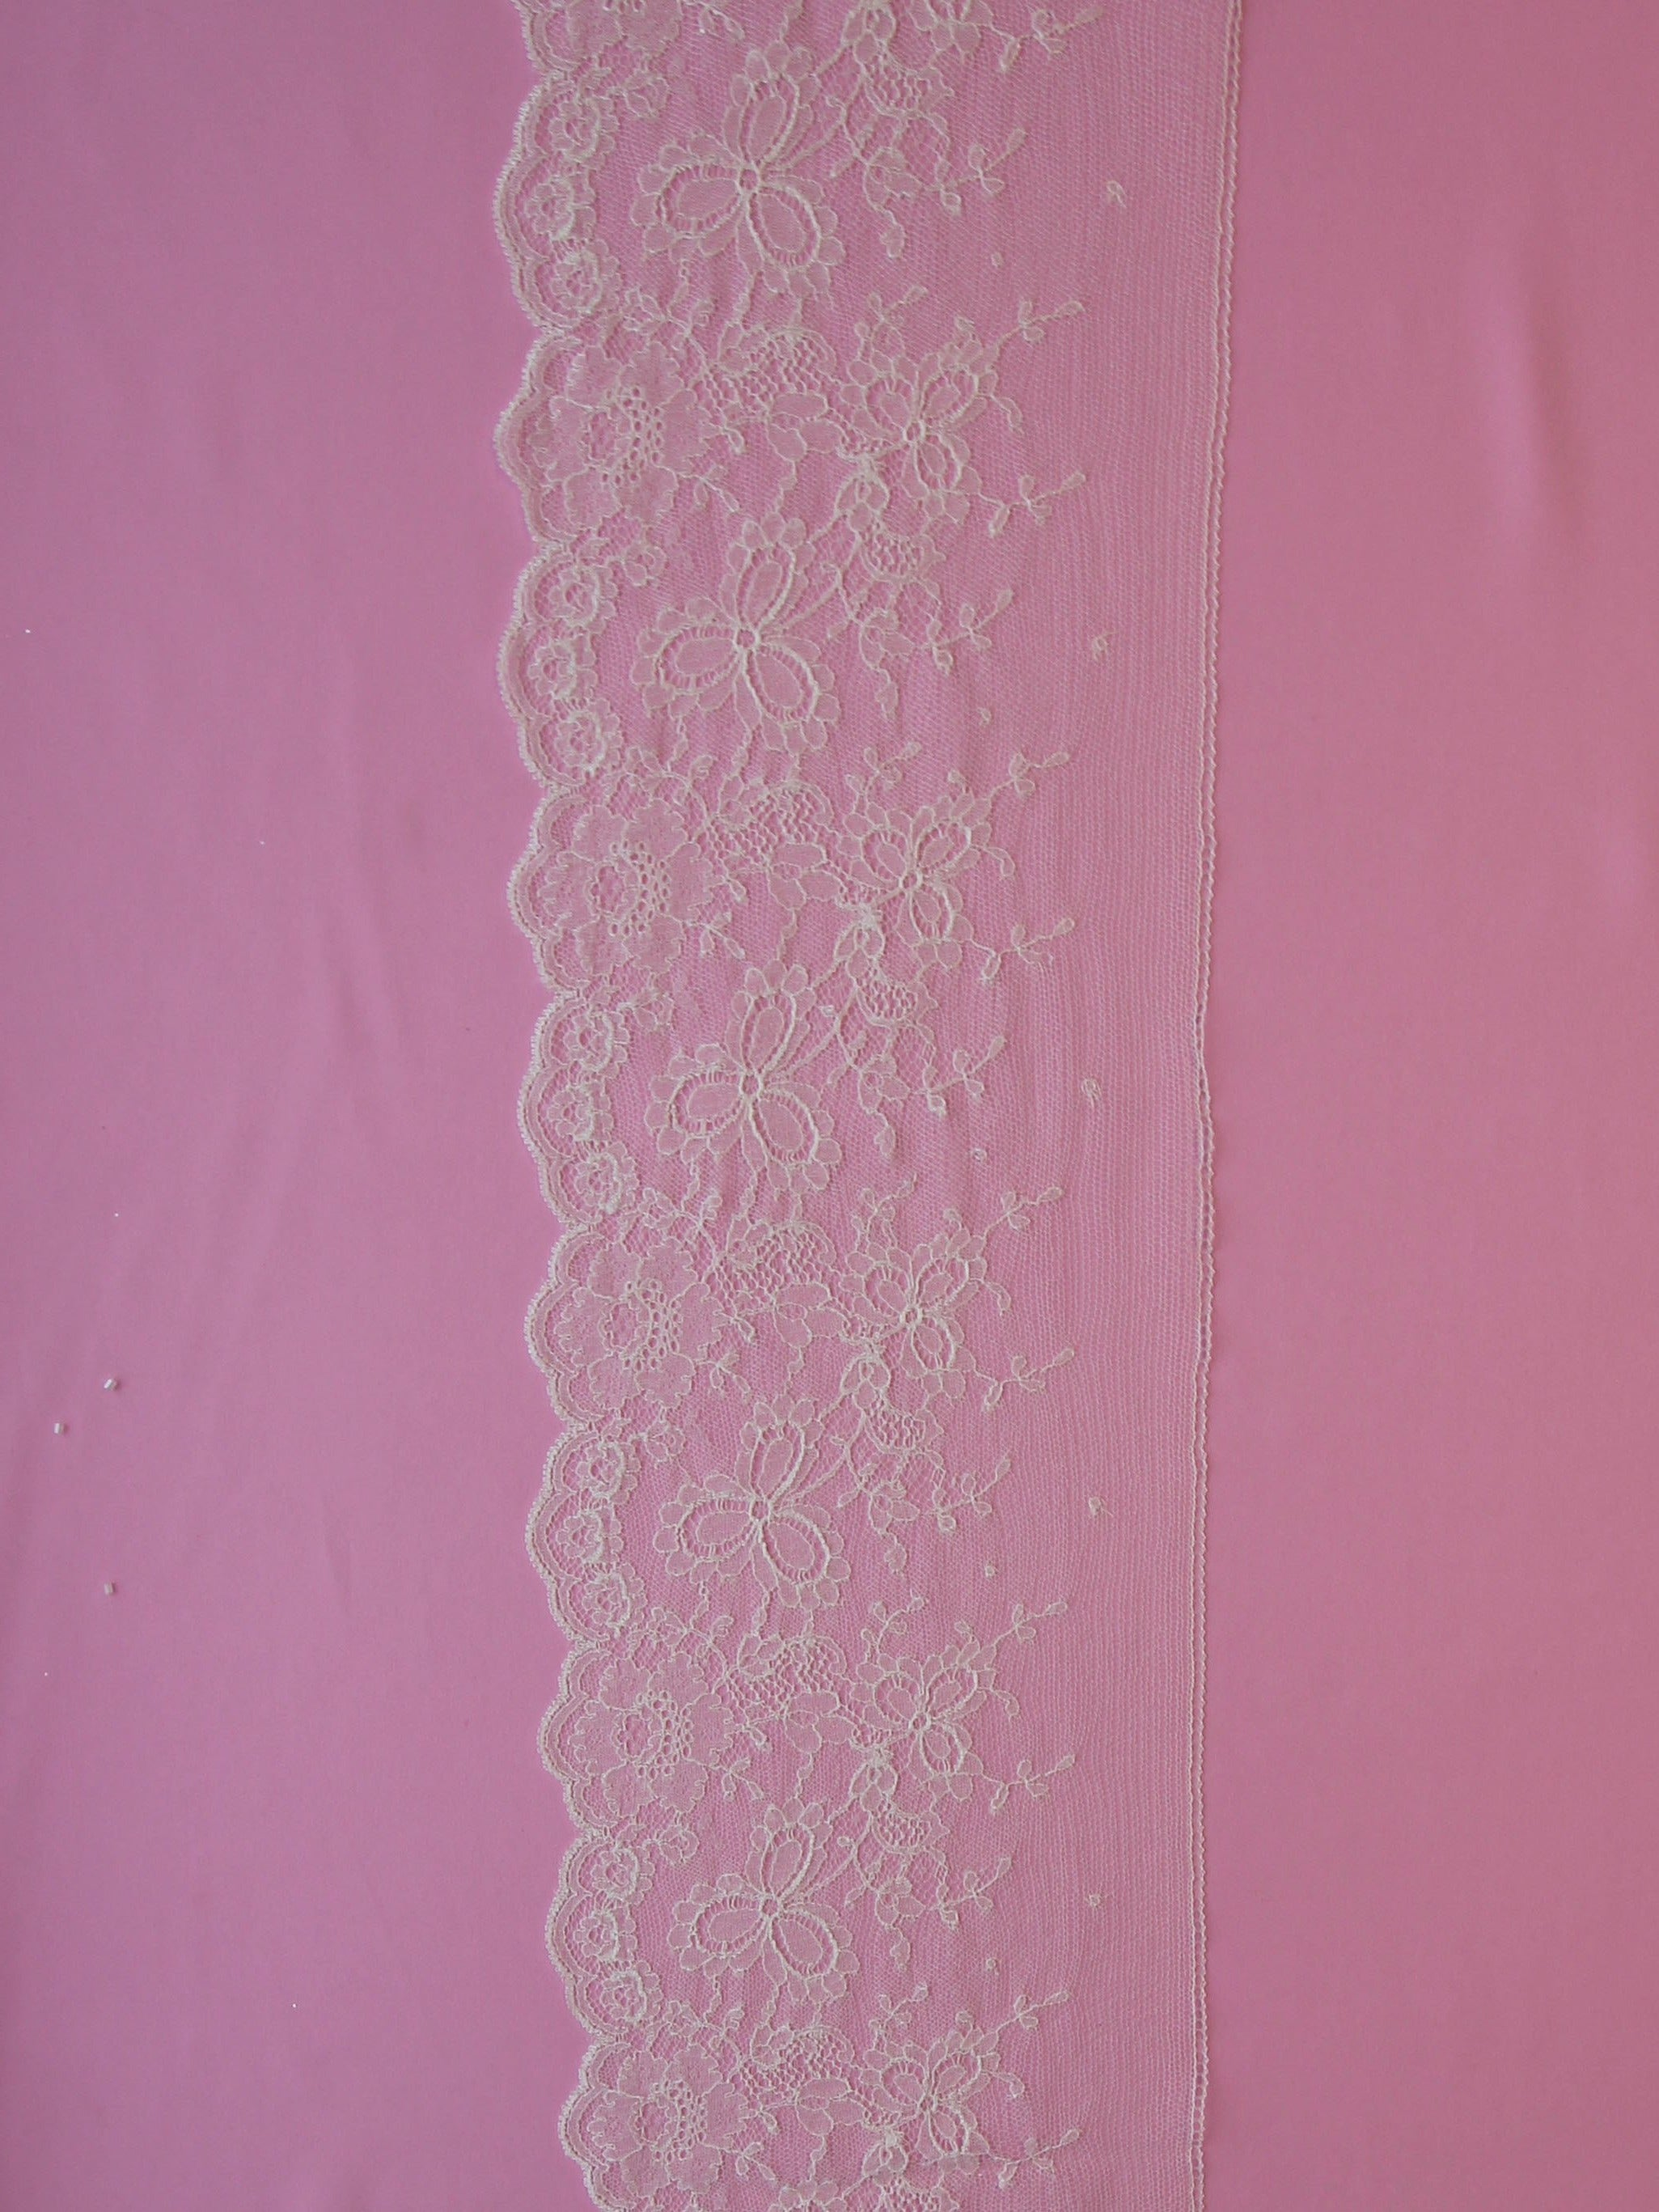 Ivory Chantilly Lace Trim - Pastelle